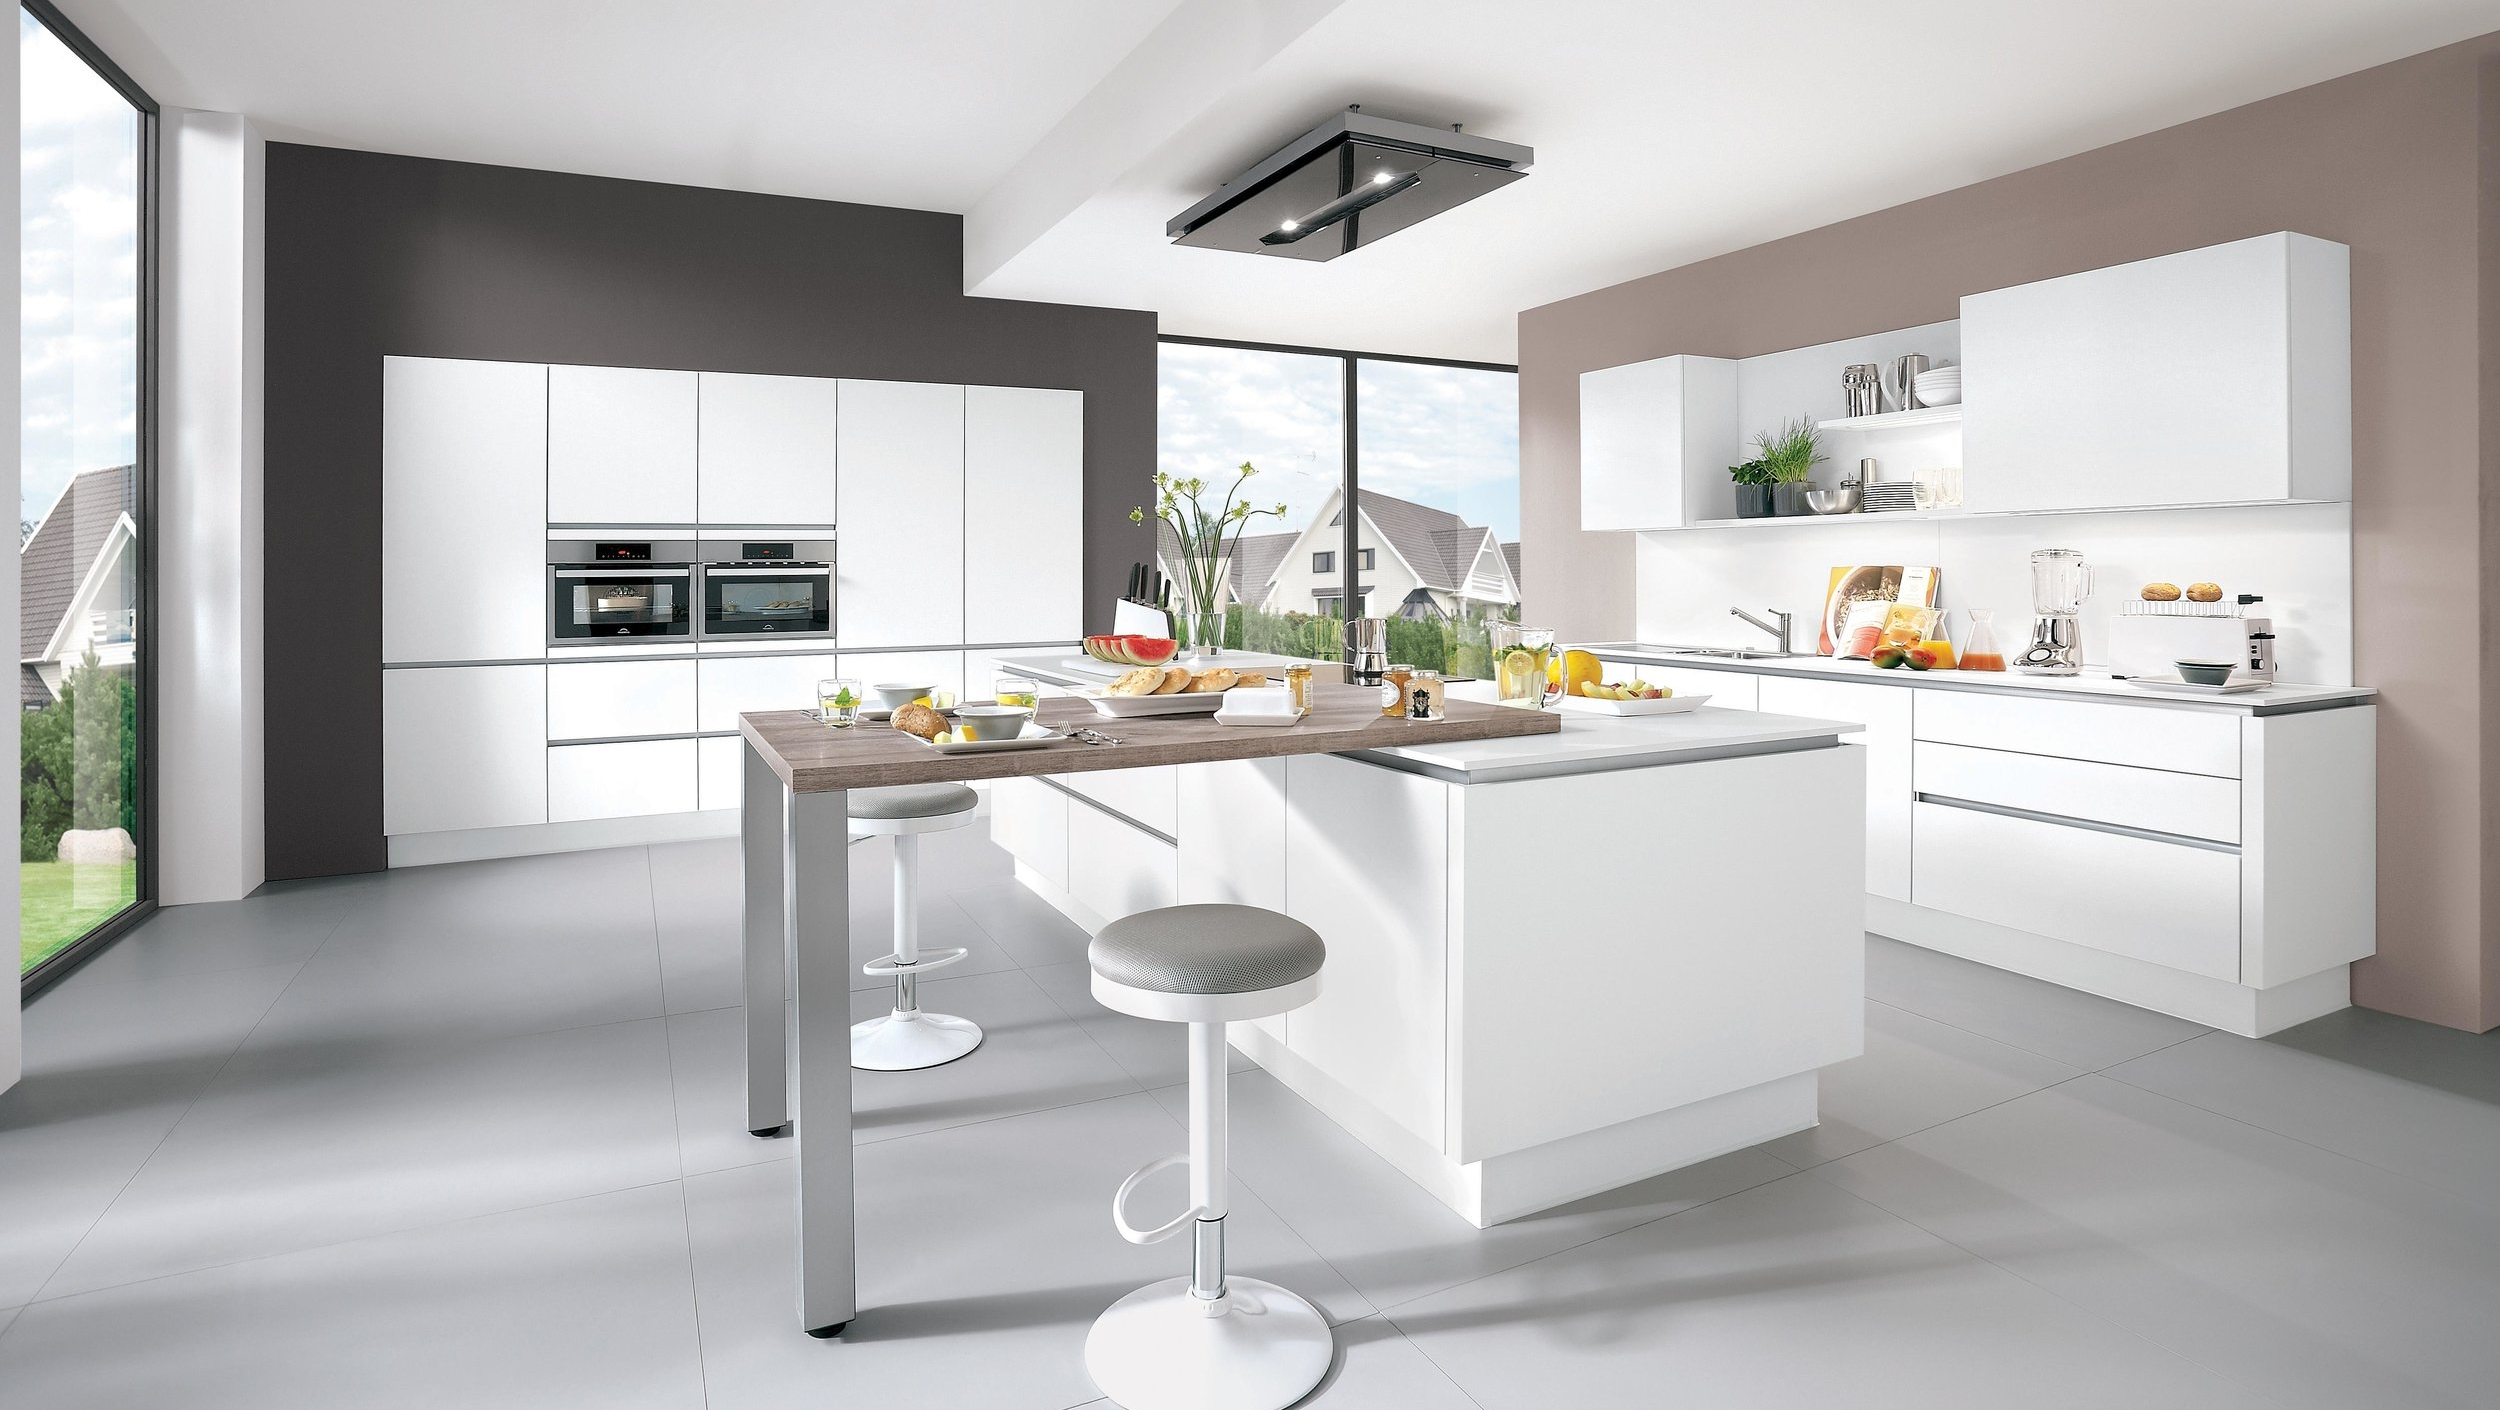 A&S Home Design - German kitchen specialists in Glasgow